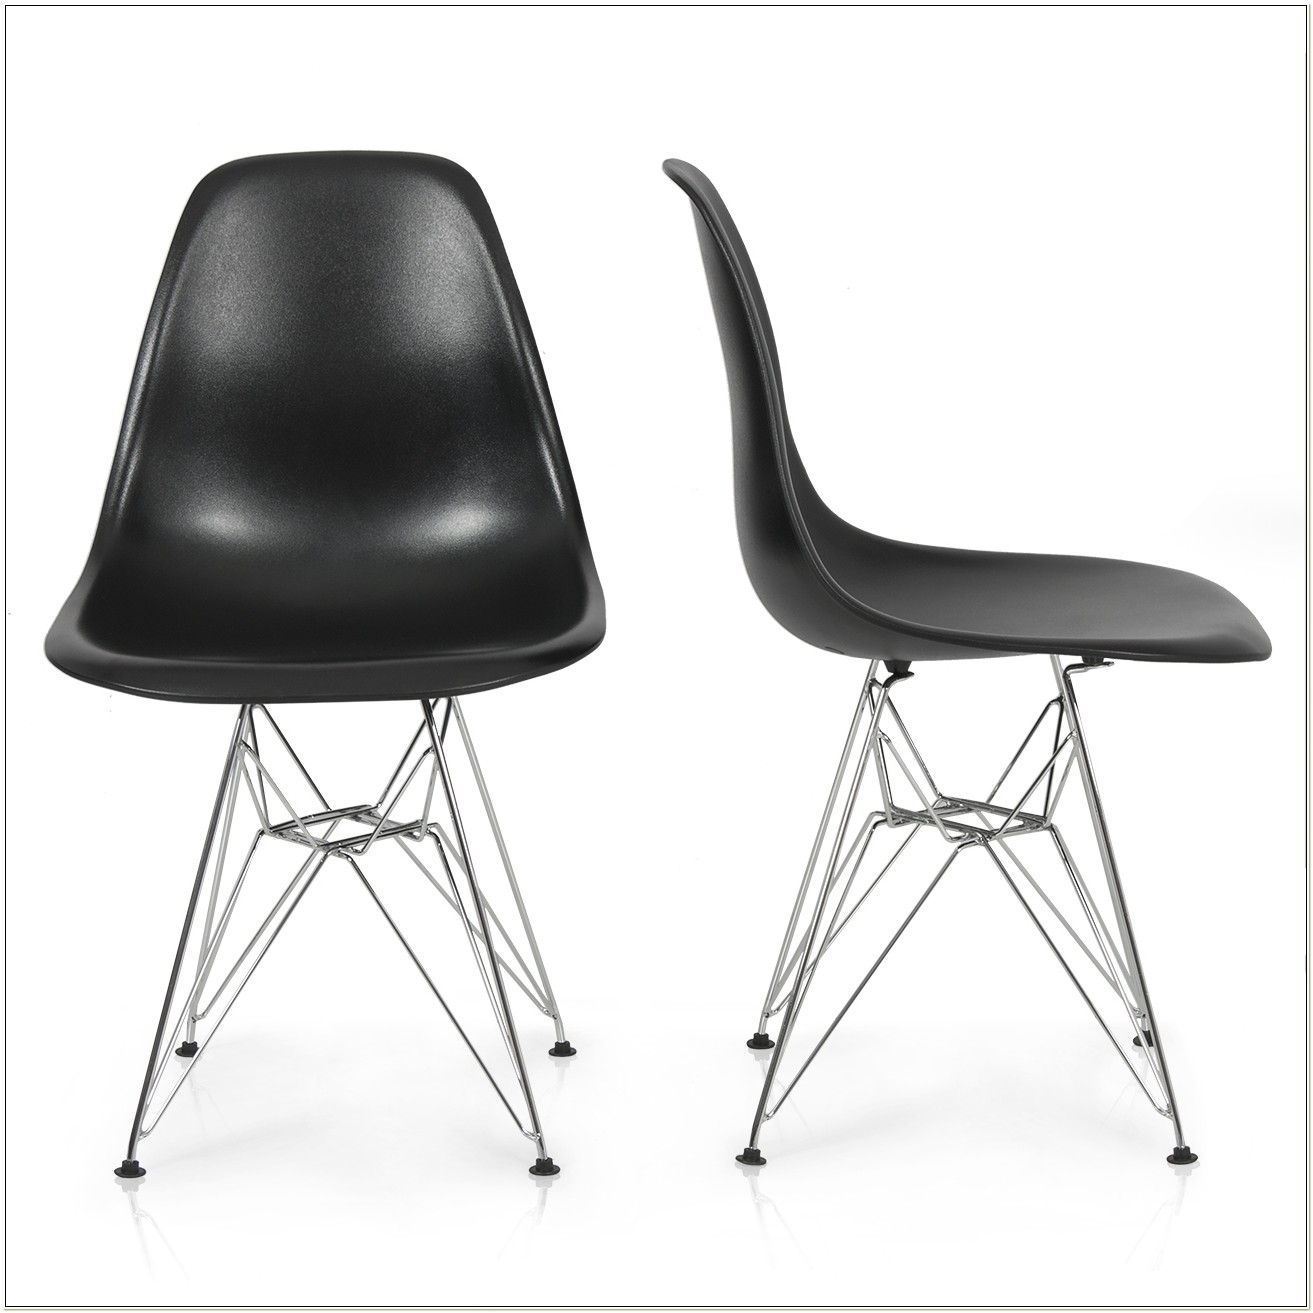 Eames Molded Plywood Lounge Chair Ebay